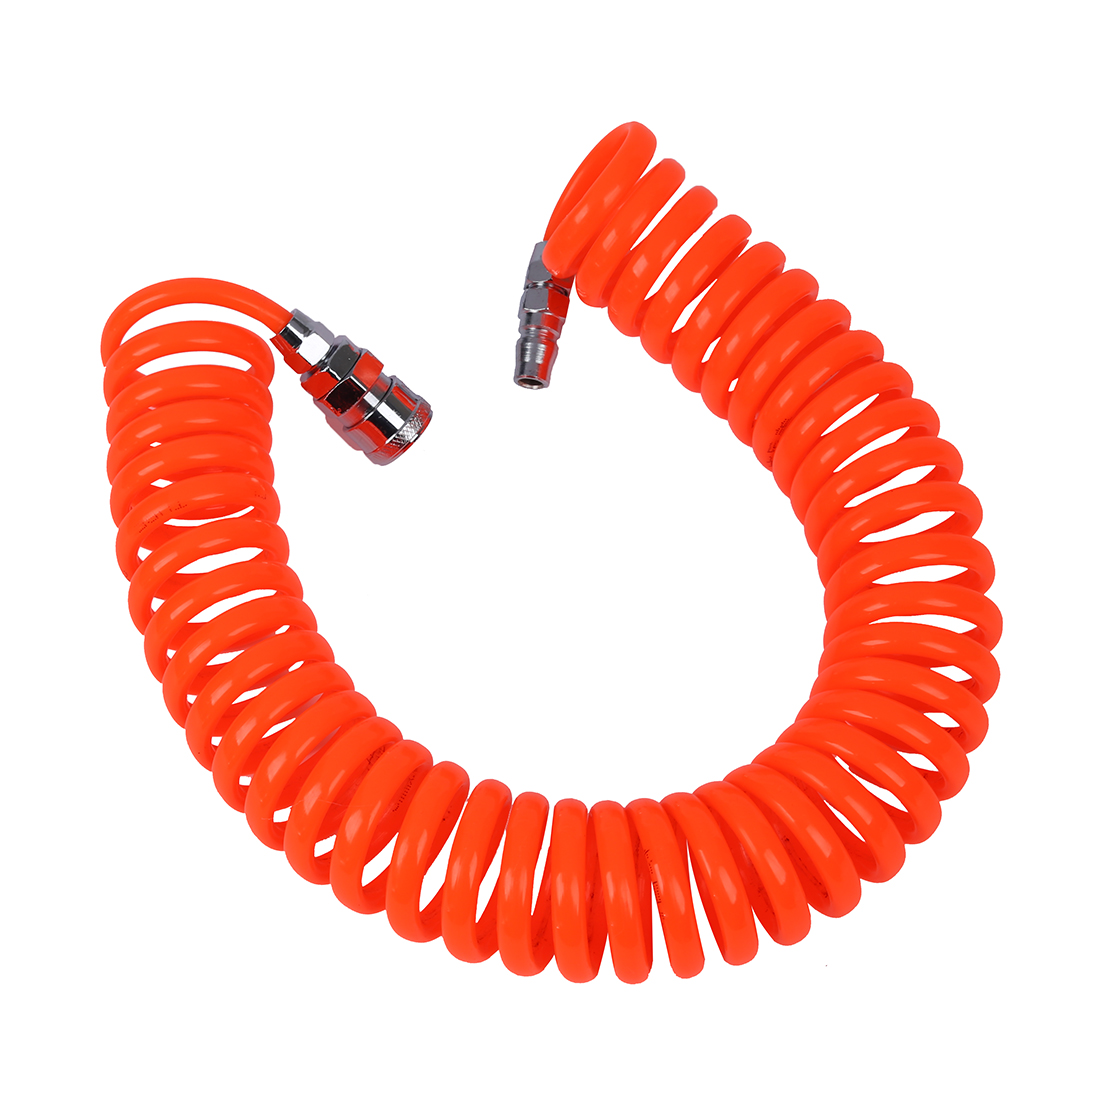 CNIM Hot 6M 19.7Ft 8mm x 5mm Flexible PU Recoil Hose Tube for Compressor Air Tool